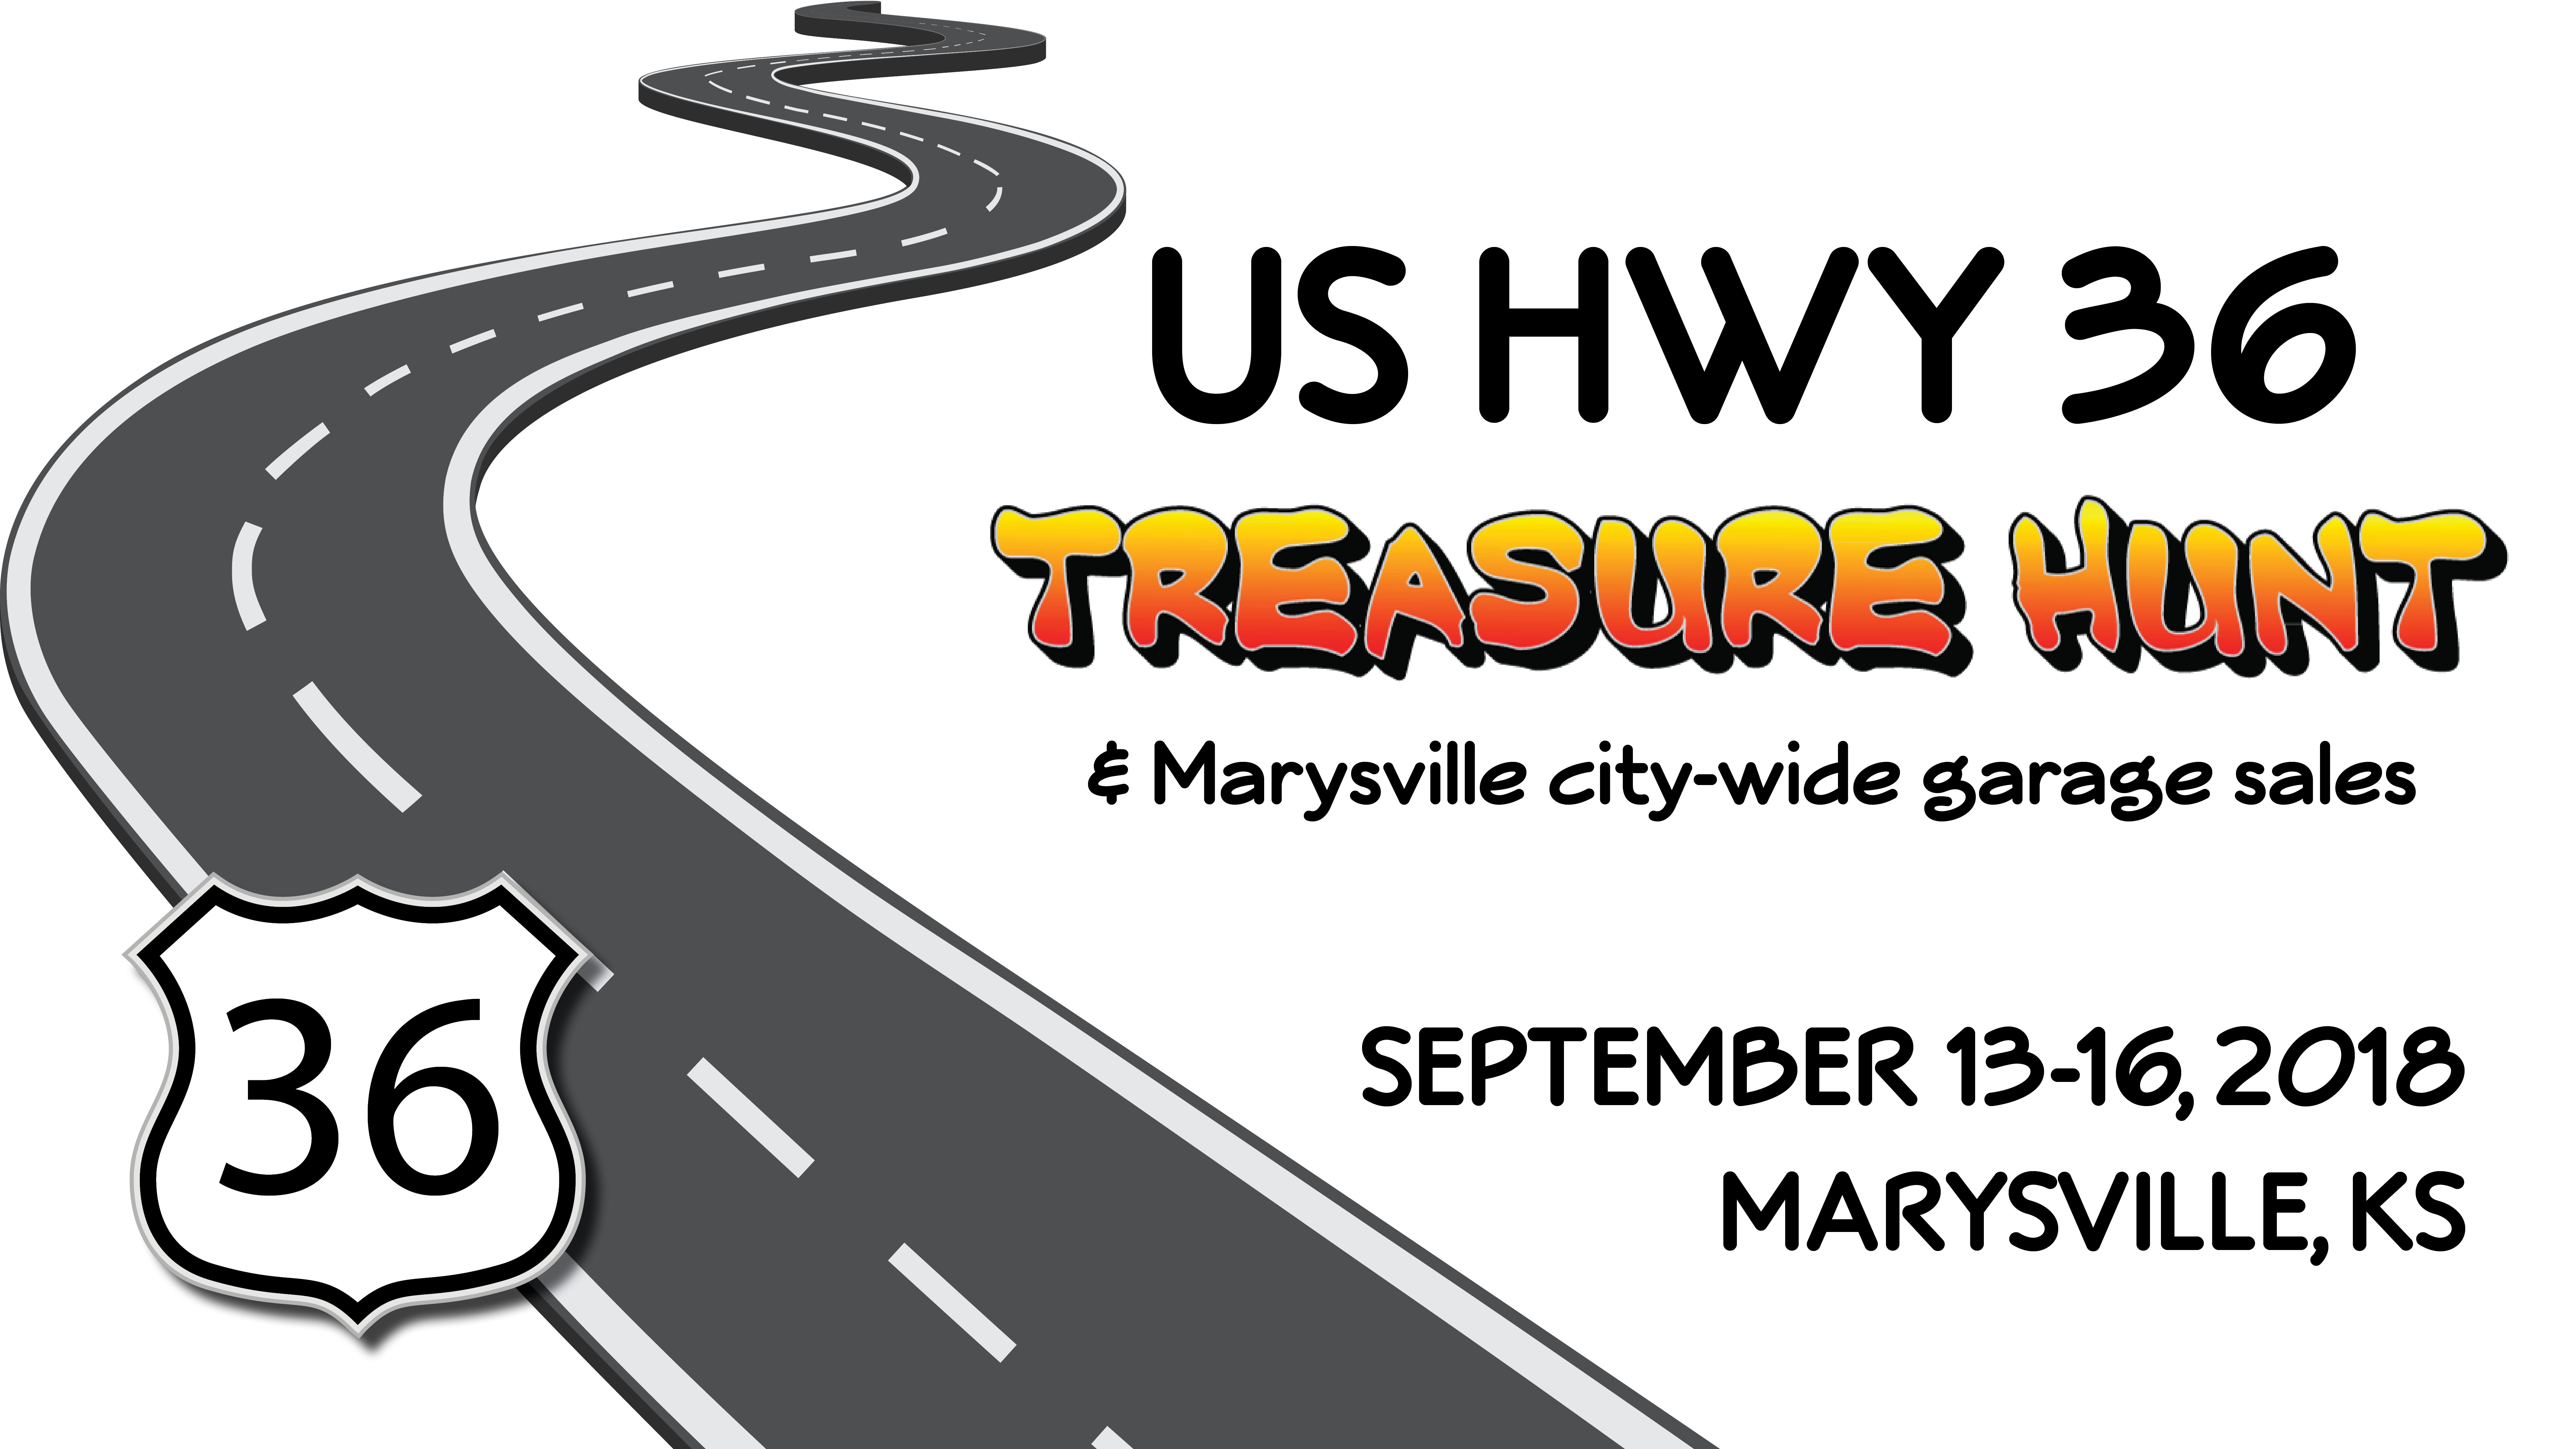 US Highway 36 Treasure Hunt & Citywide Garage Sales